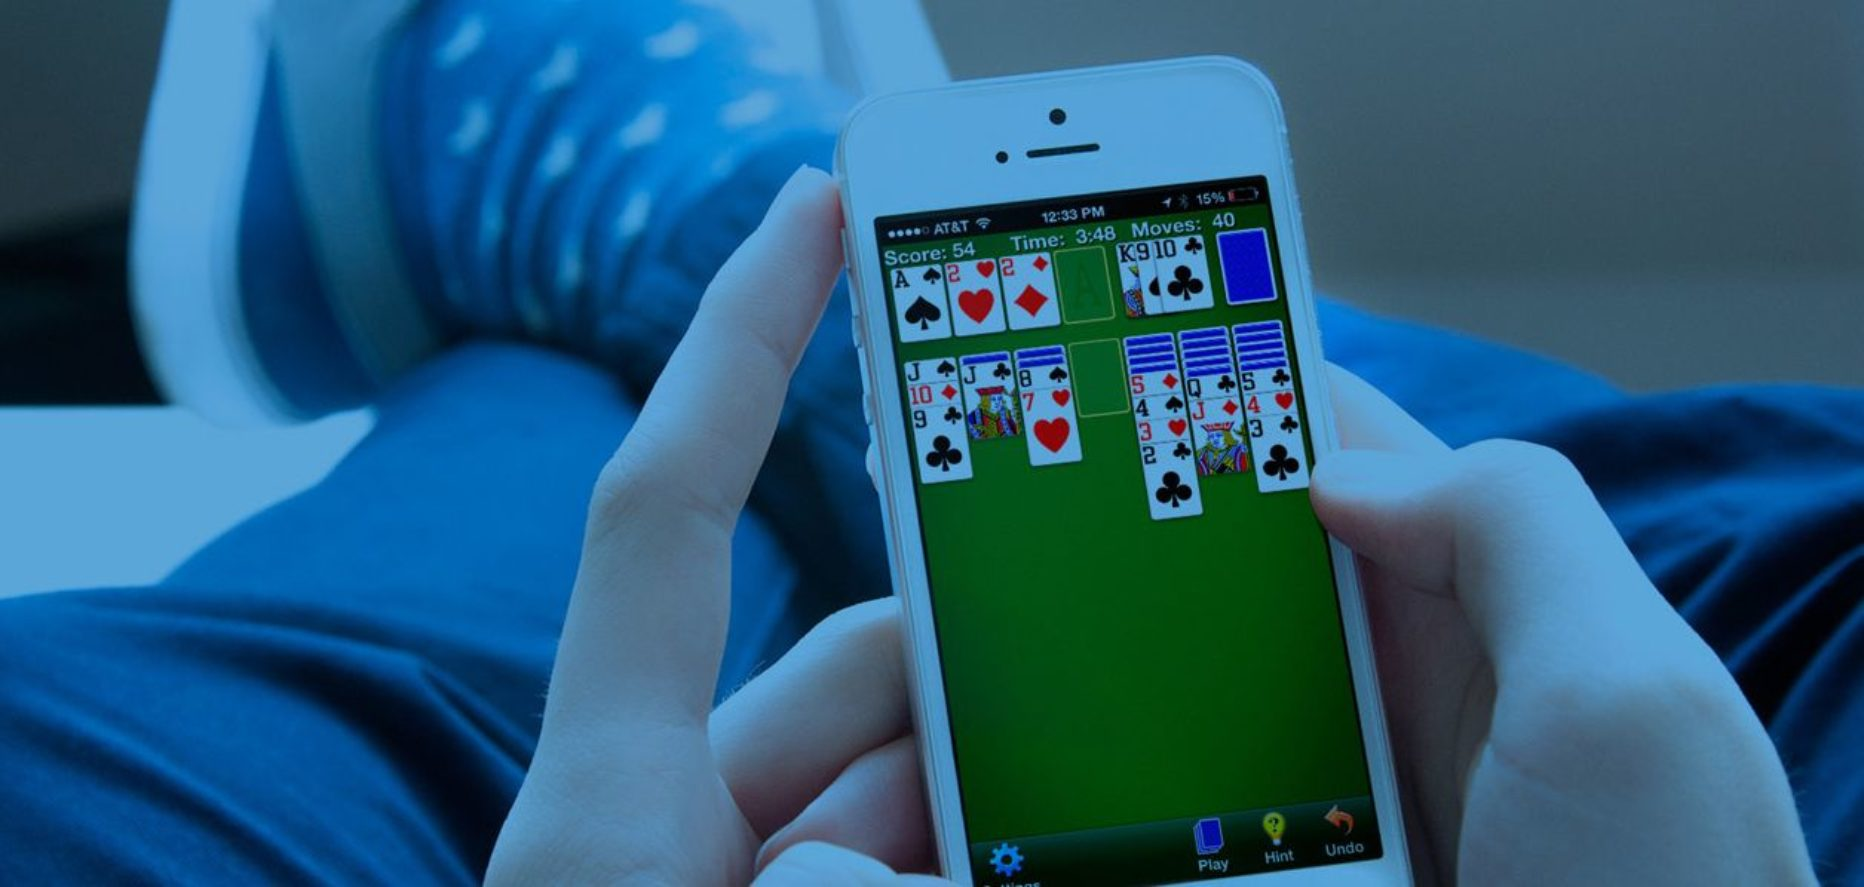 Solitaire Fun with Daily Challenges and Winnings